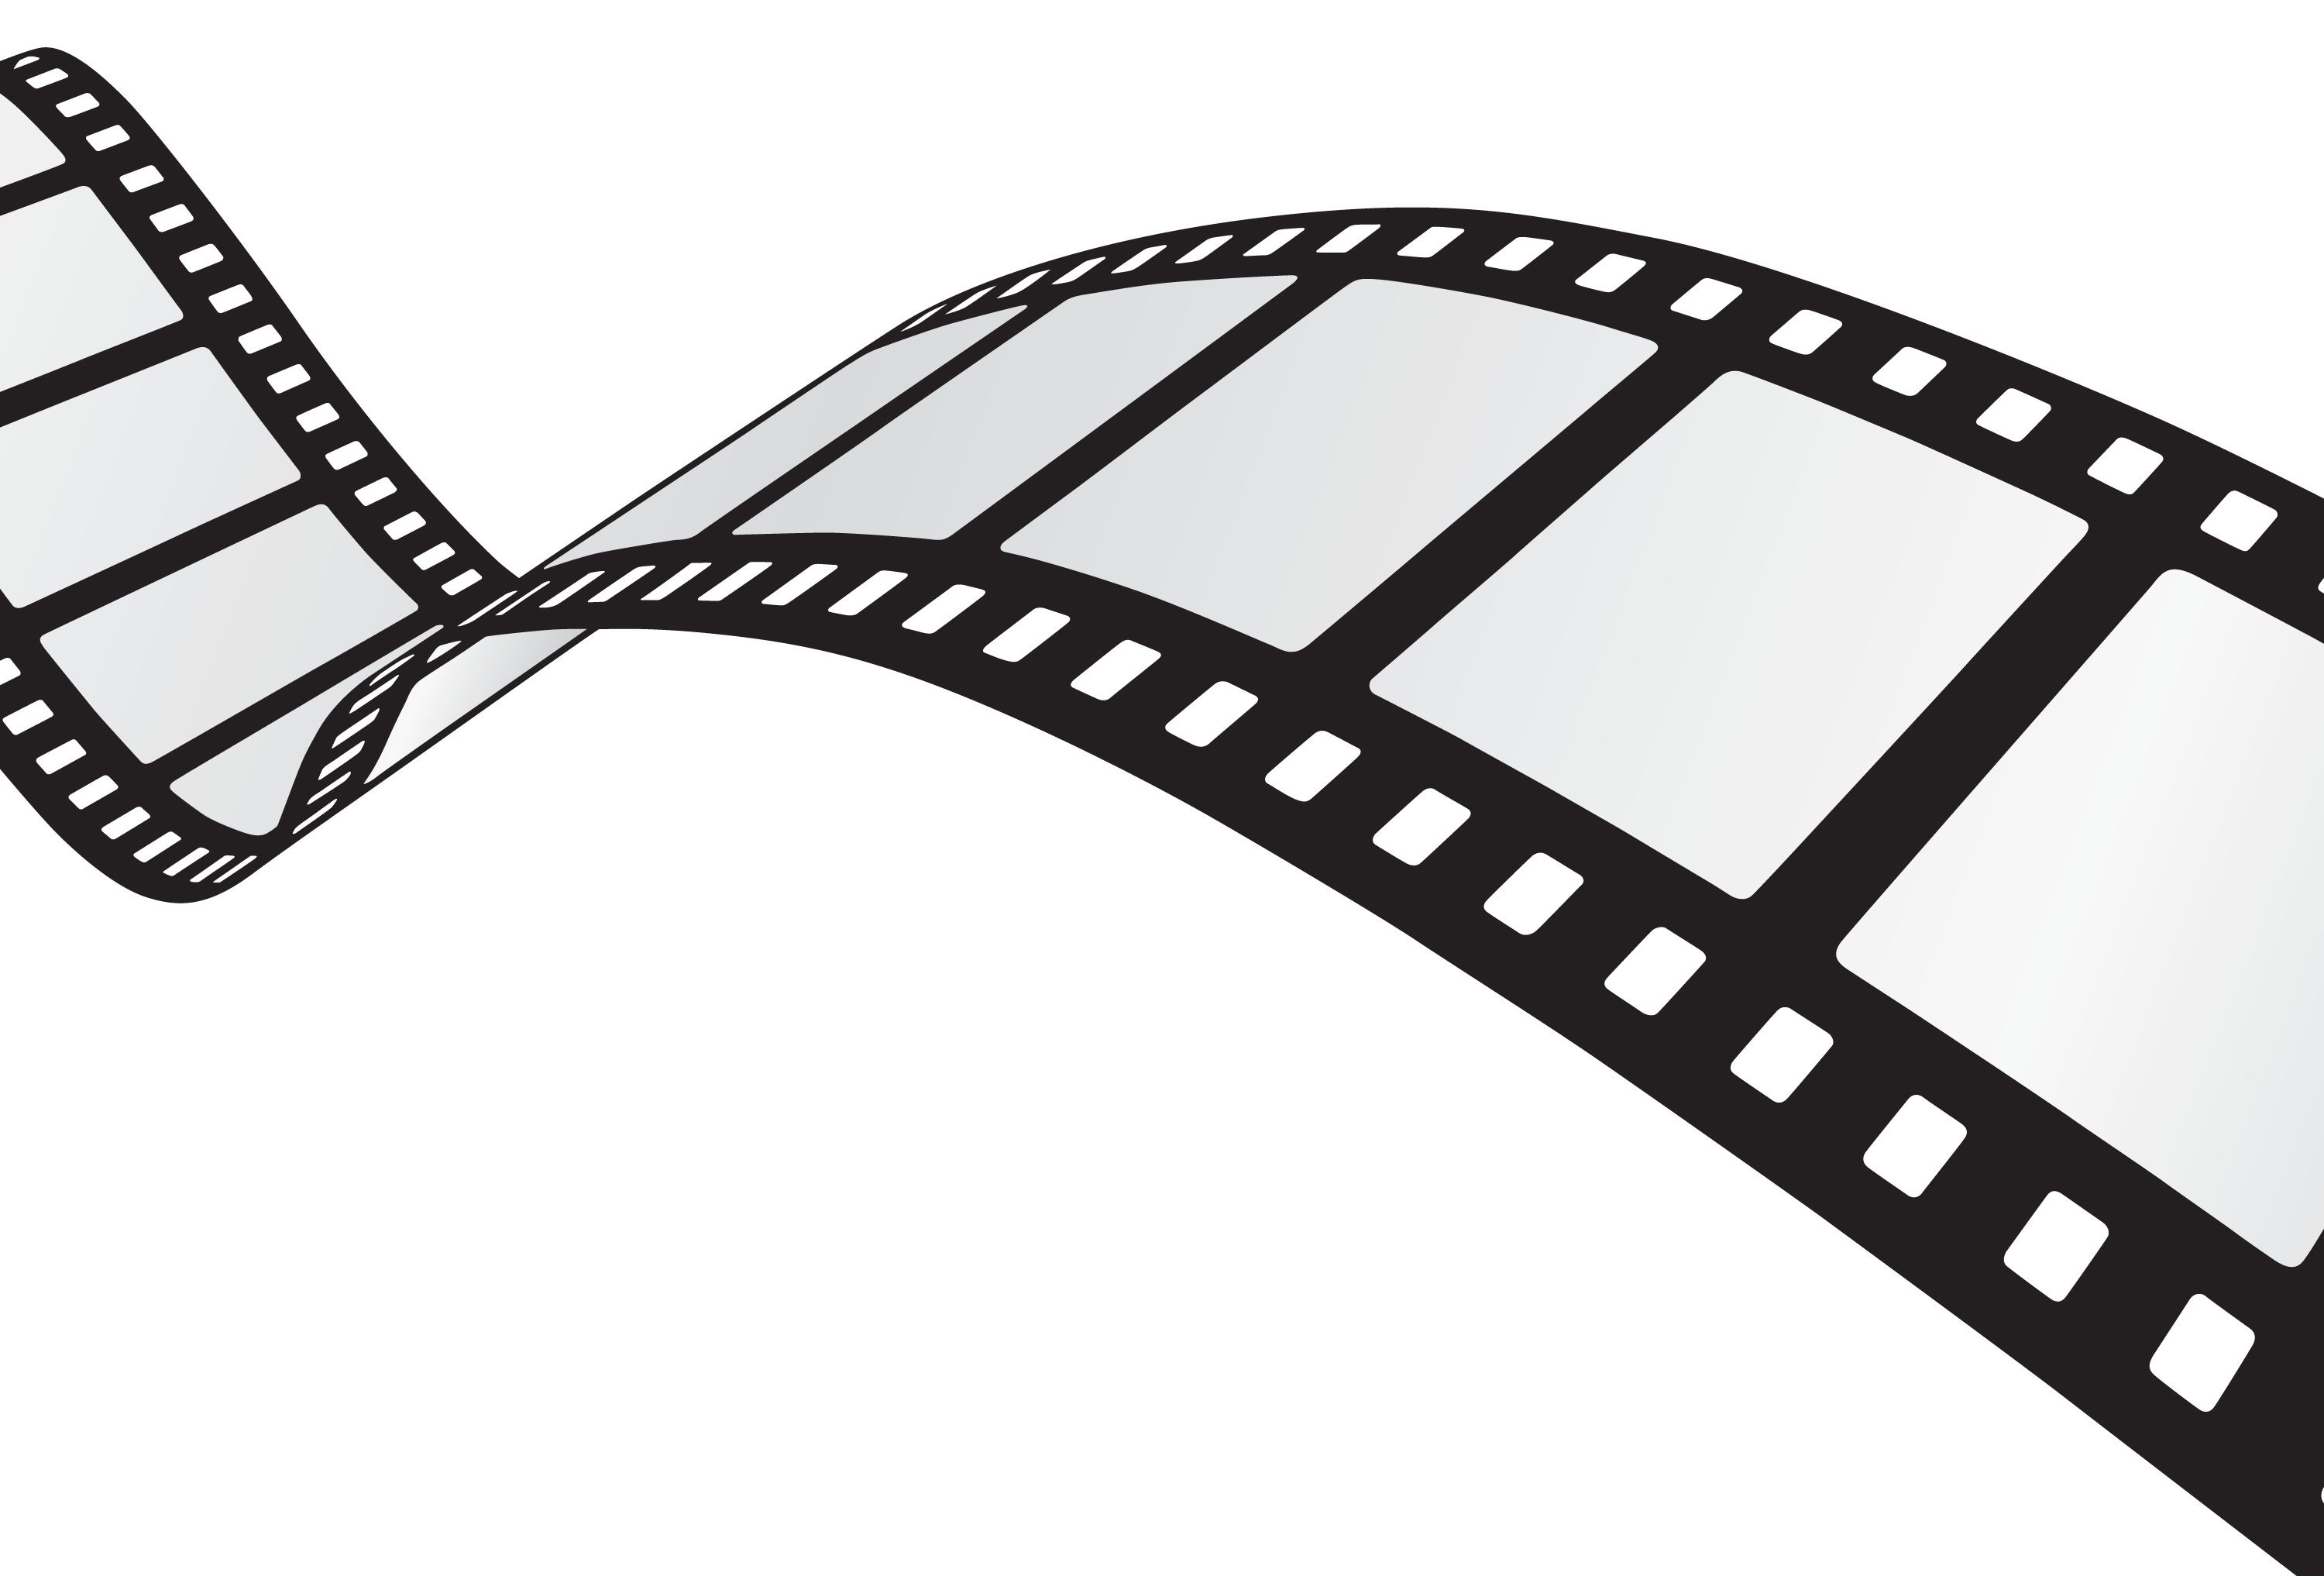 Movie tape. Film roll clipart free